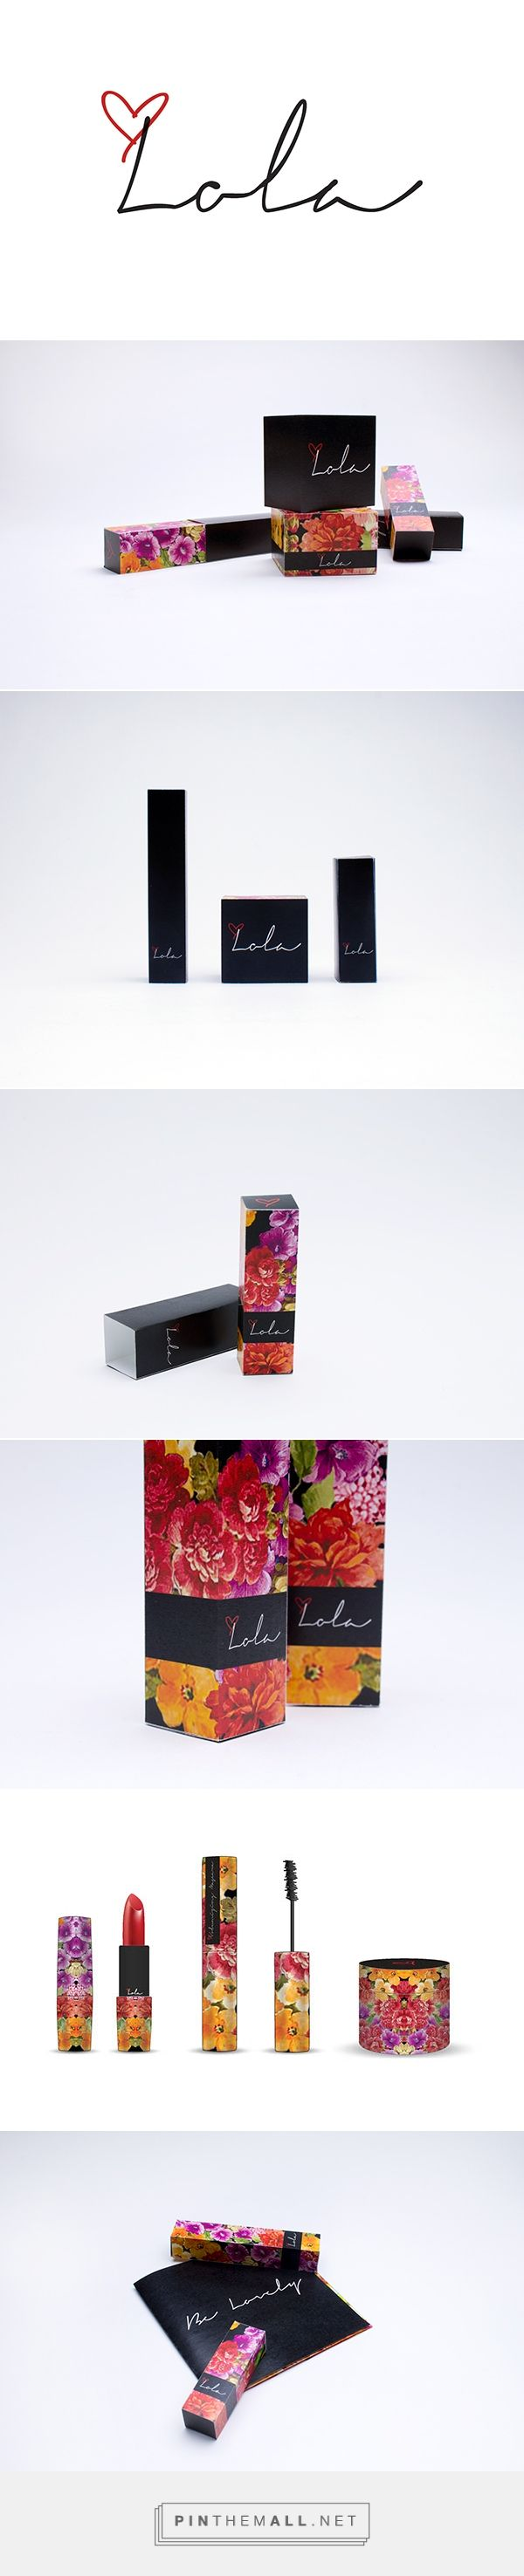 Lola Cosmetics Packaging by Meghan Larimer on Behance | Fivestar Branding – Design and Branding Agency & Inspiration Gallery